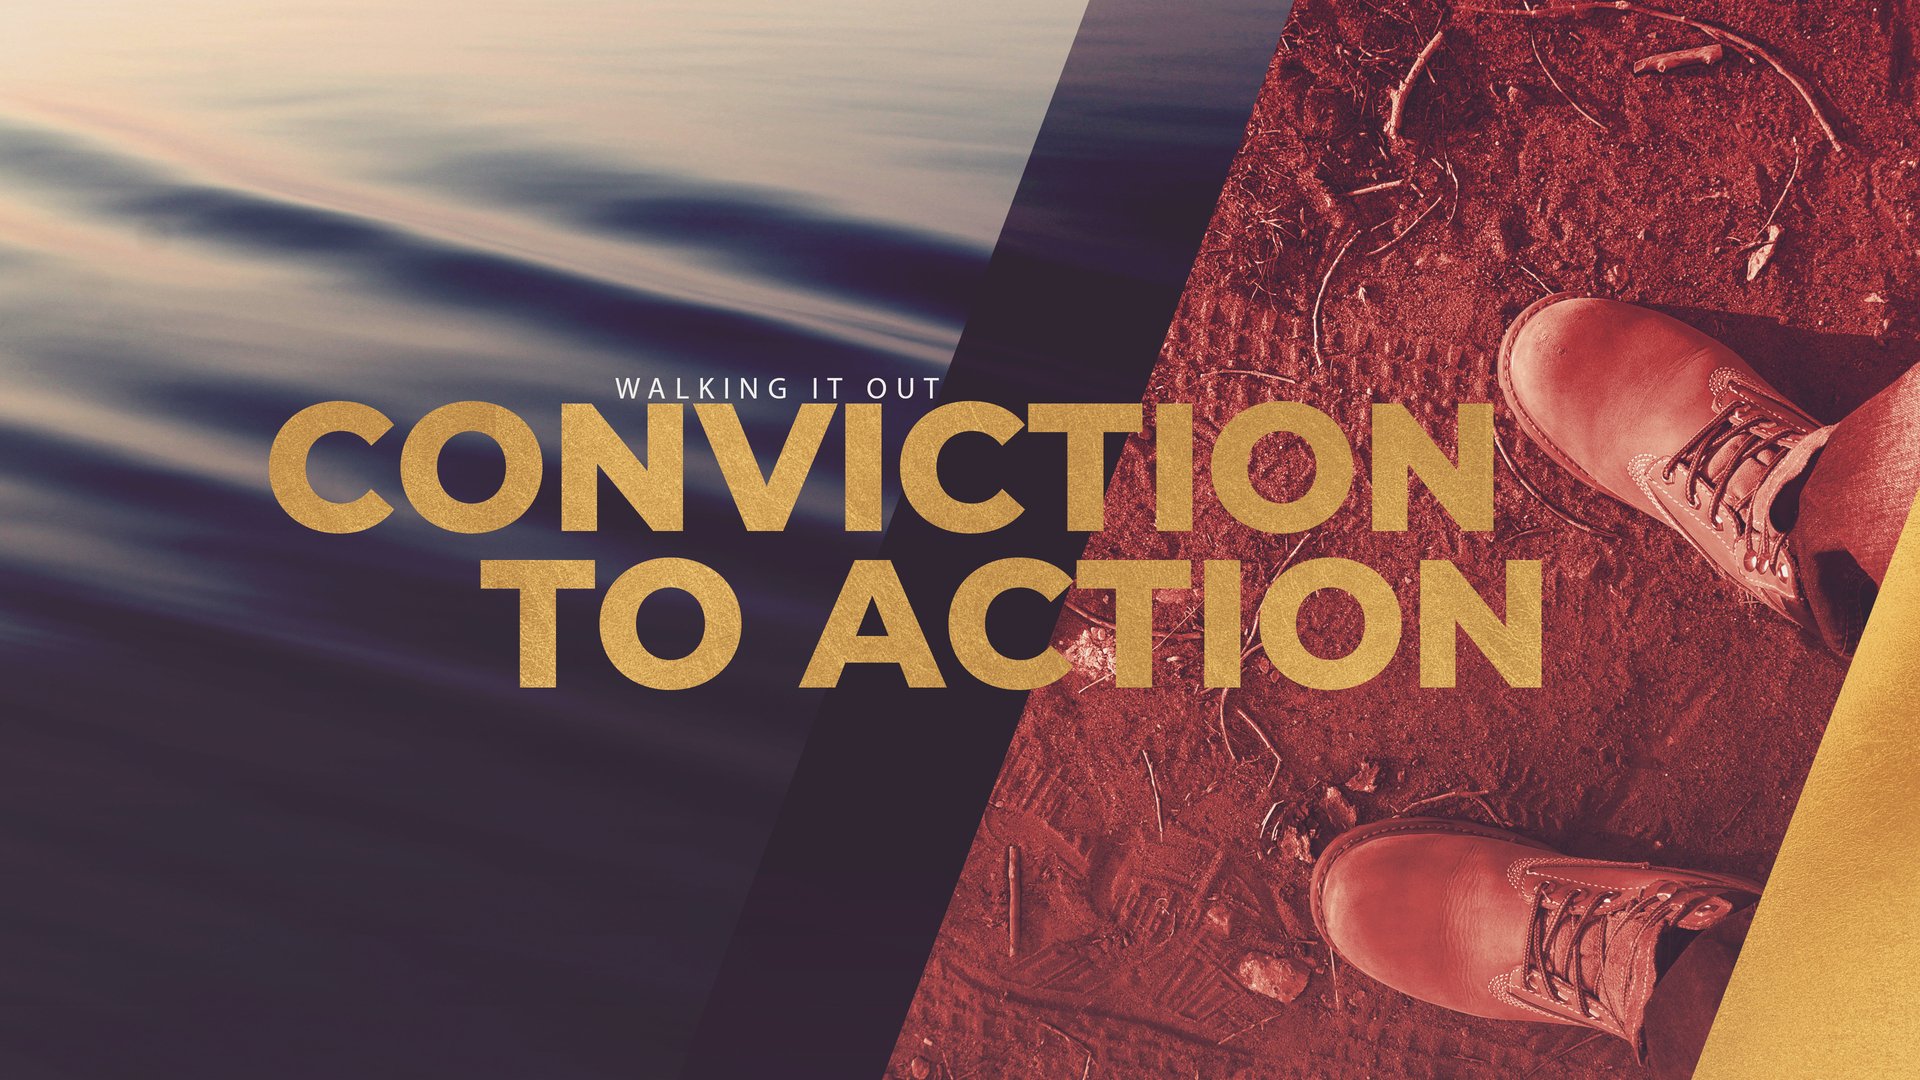 Walking It Out: Conviction to Action